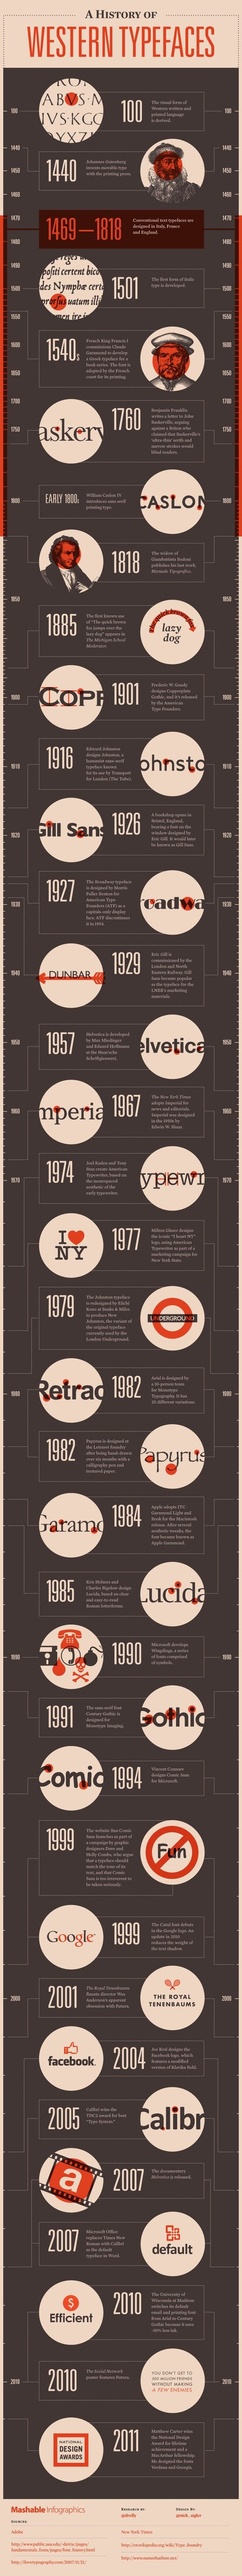 History of Western type